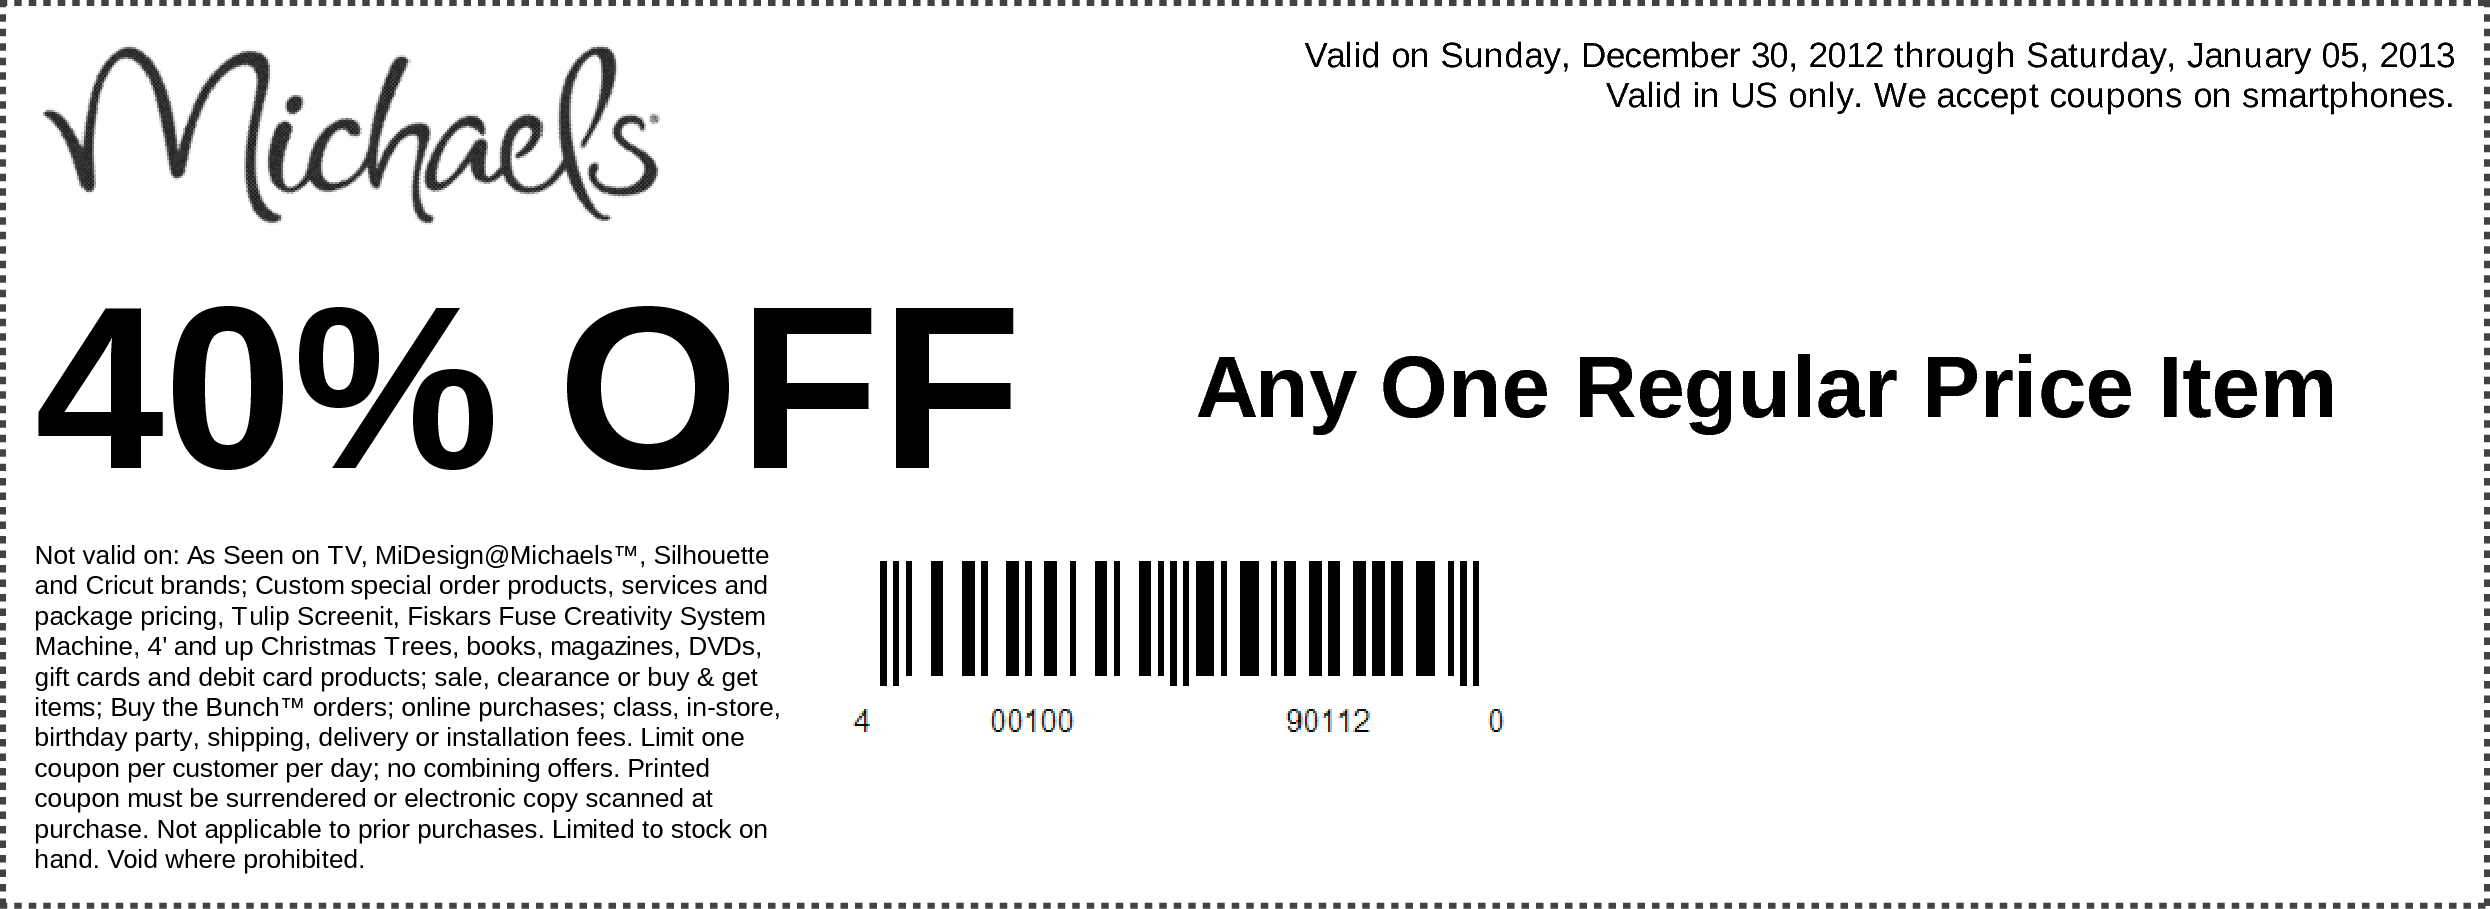 Michaels Coupon – 40% Off 1 Regularly Priced Item (exp: 1/5/2013)